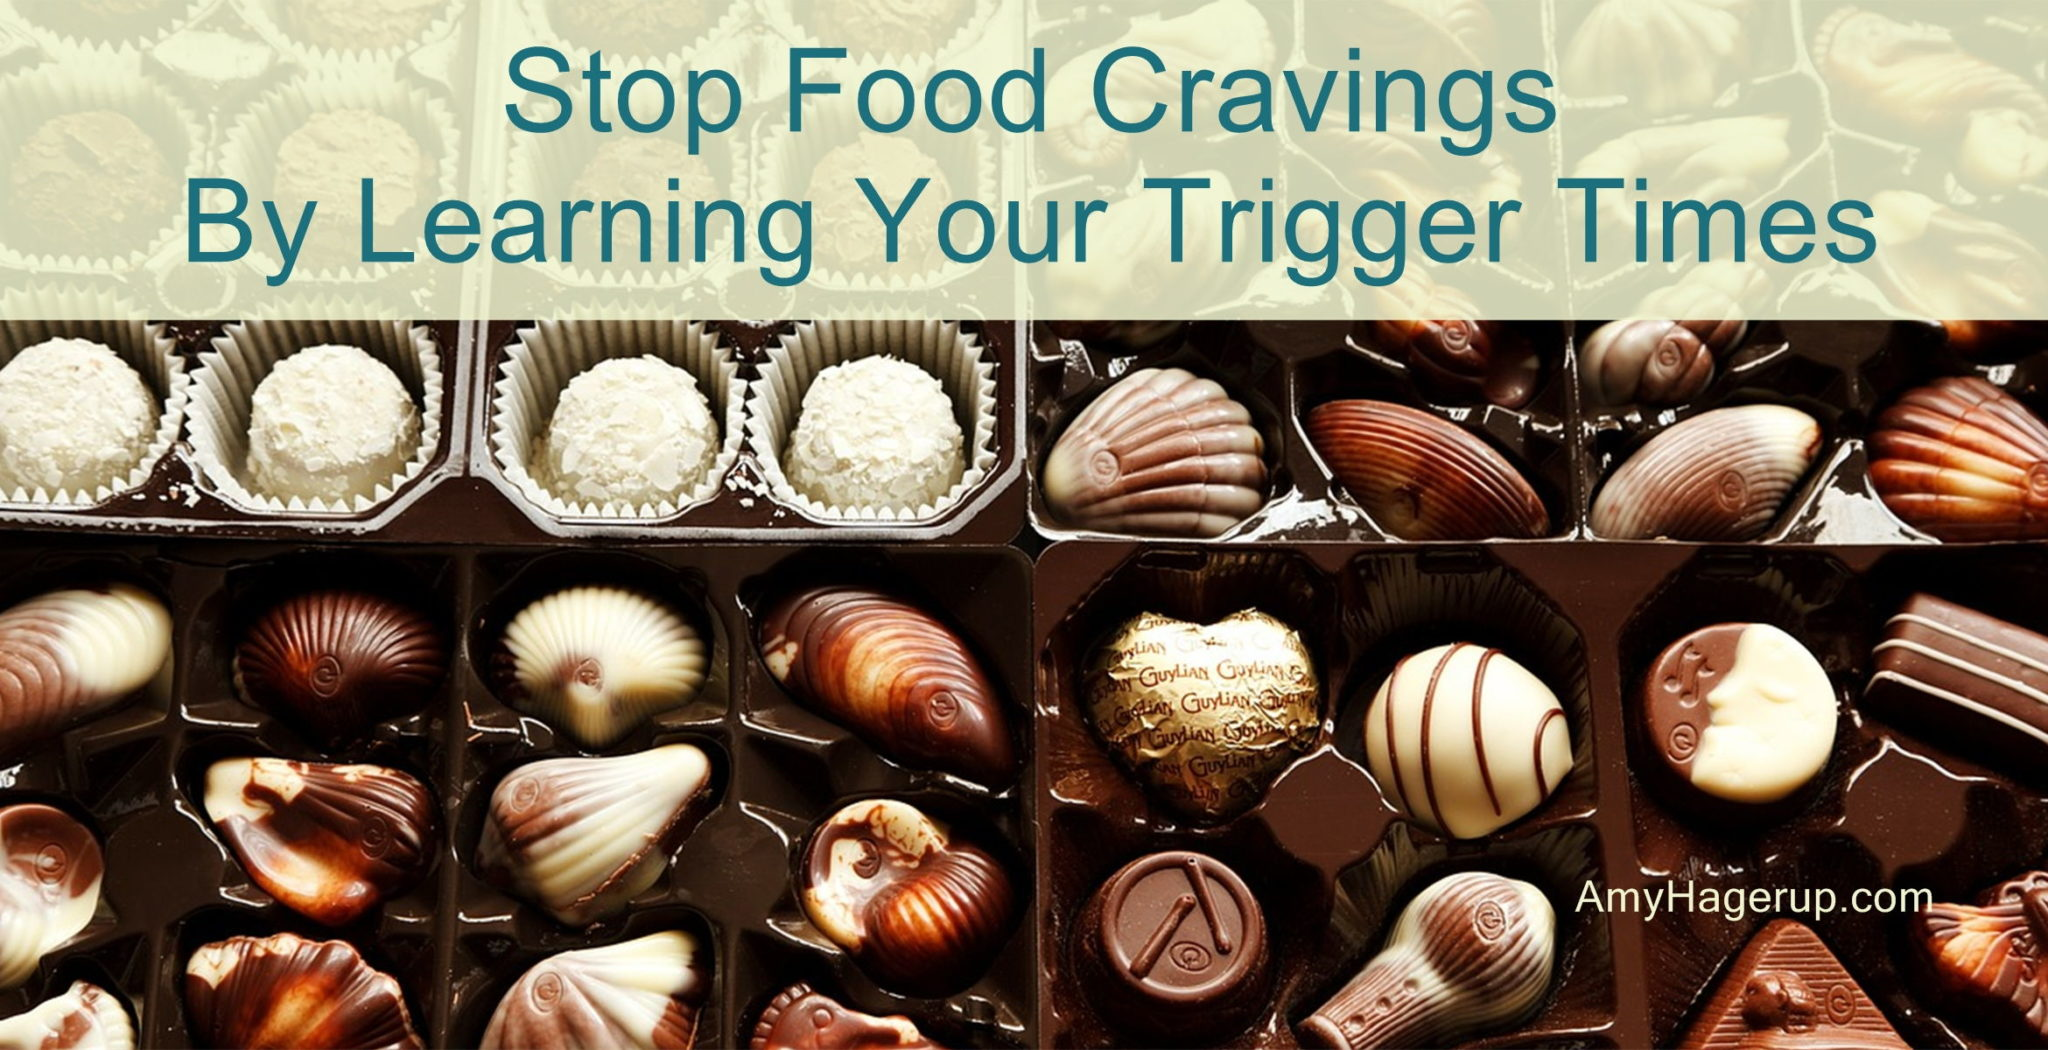 Stop Food Cravings By Learning Your Trigger Times